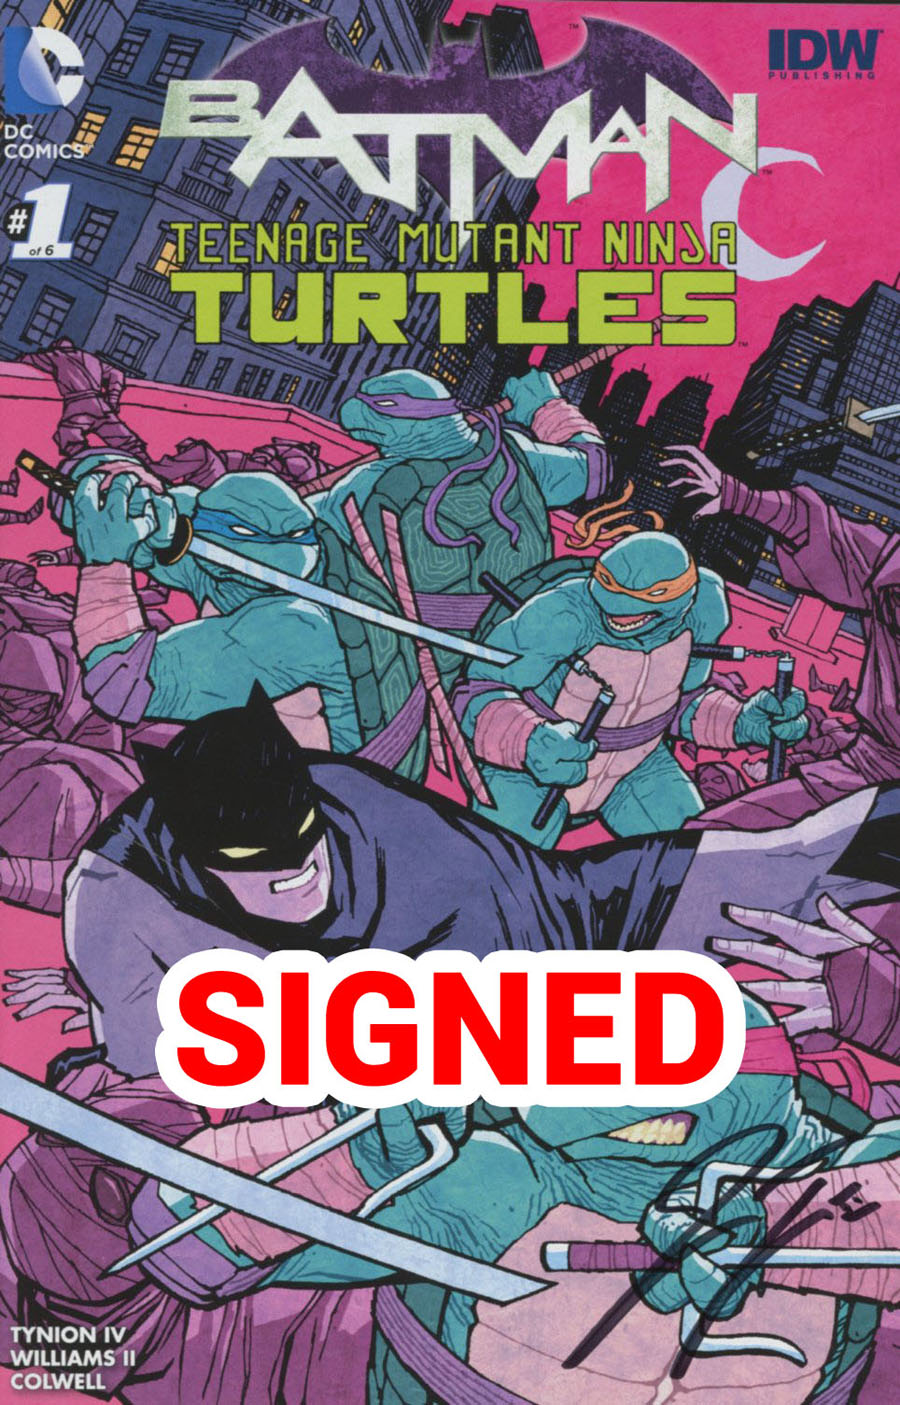 Batman Teenage Mutant Ninja Turtles #1 Cover Q Midtown Exclusive Cliff Chiang Color Variant Cover Signed By James Tynion IV